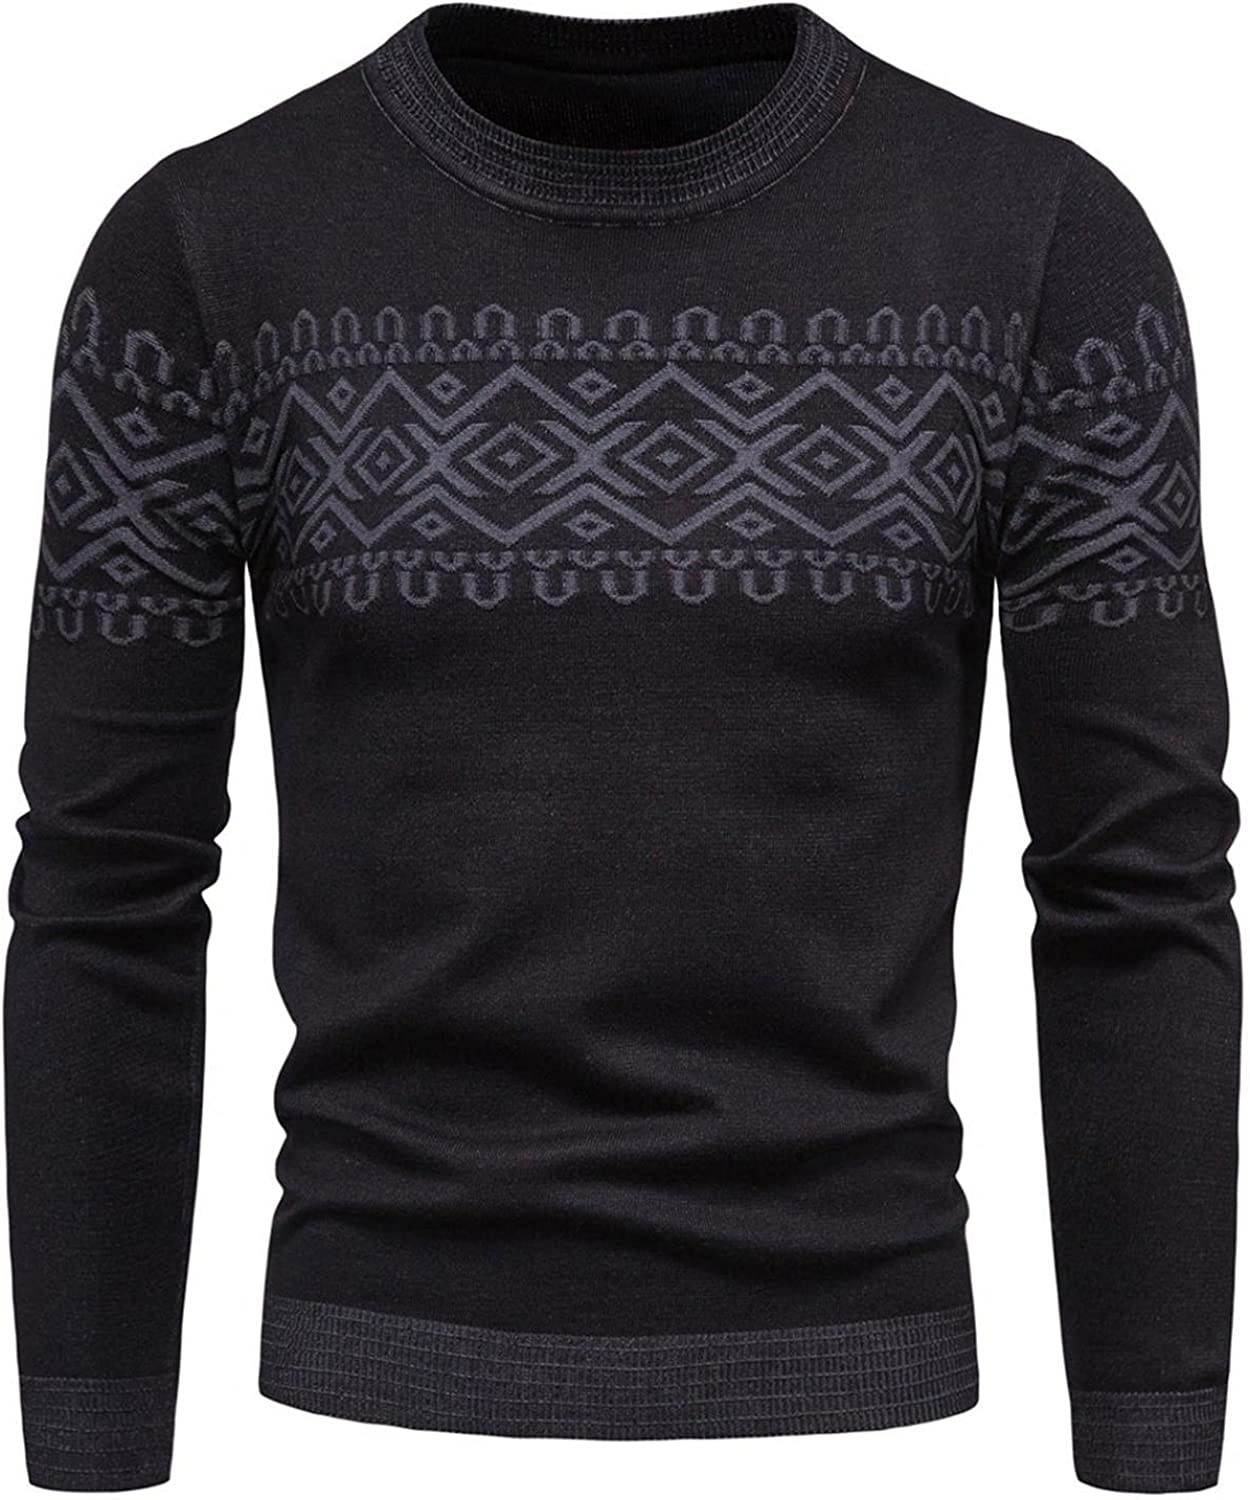 Men Sweaters Autumn Winter Round Neck Sweater Knitted Pattern Sweater Pullover Top,Soft Cotton Pullover Sweater